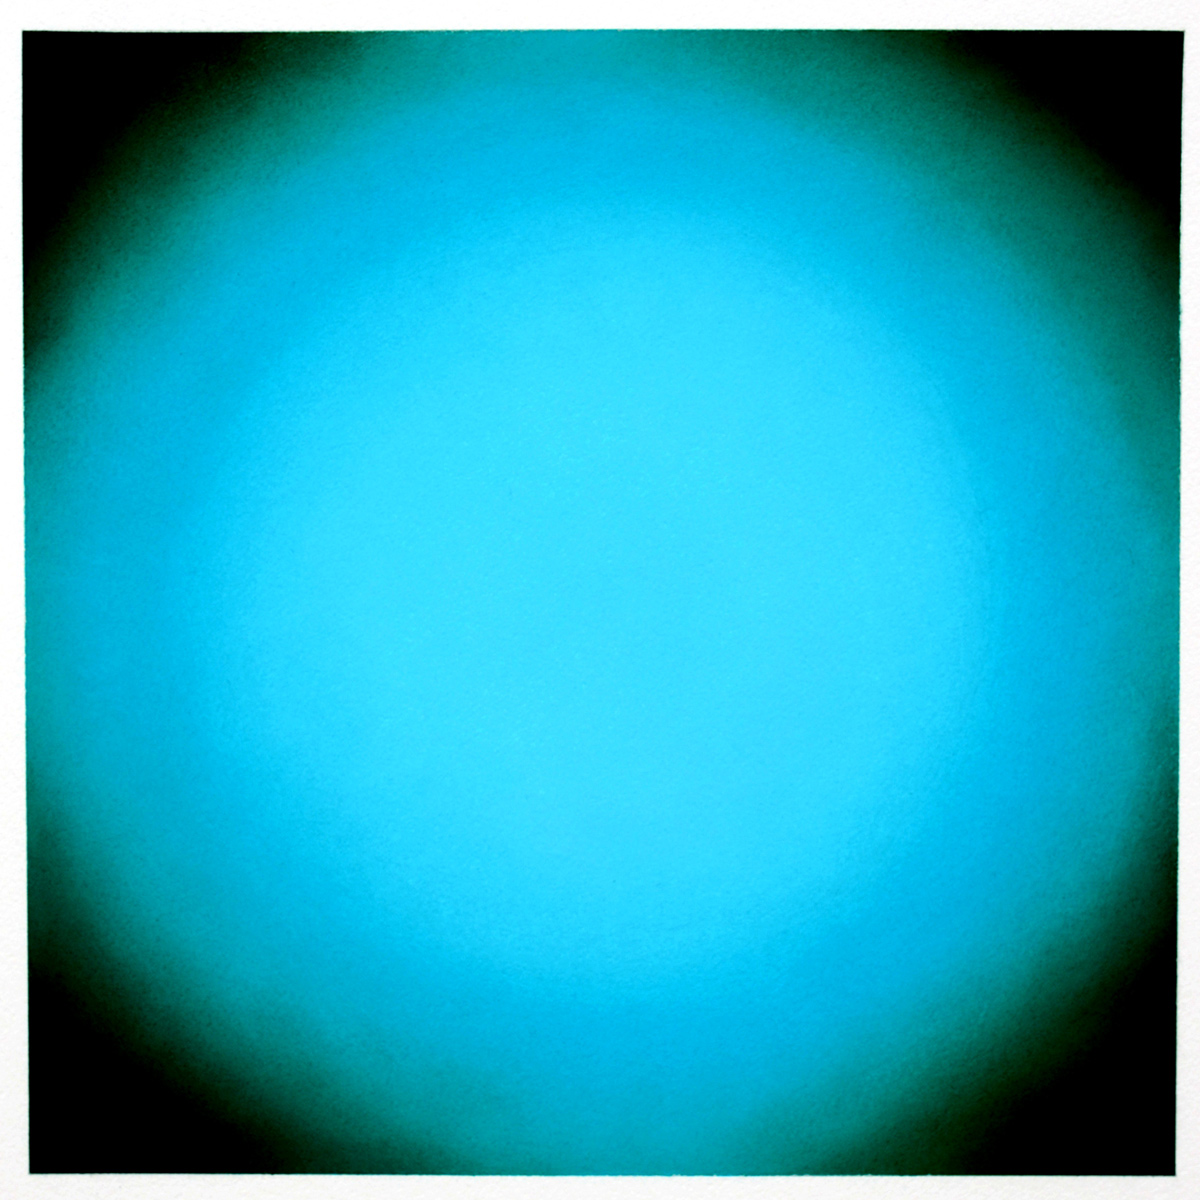 Cool-Light Blue Green, Circle, Warm-Light Cool-Light Series, 2012, pastel on paper, image: 14 x 14 in. (36 x 36 cm.), sheet: 30 x 22 in. (76 x 56 cm.)